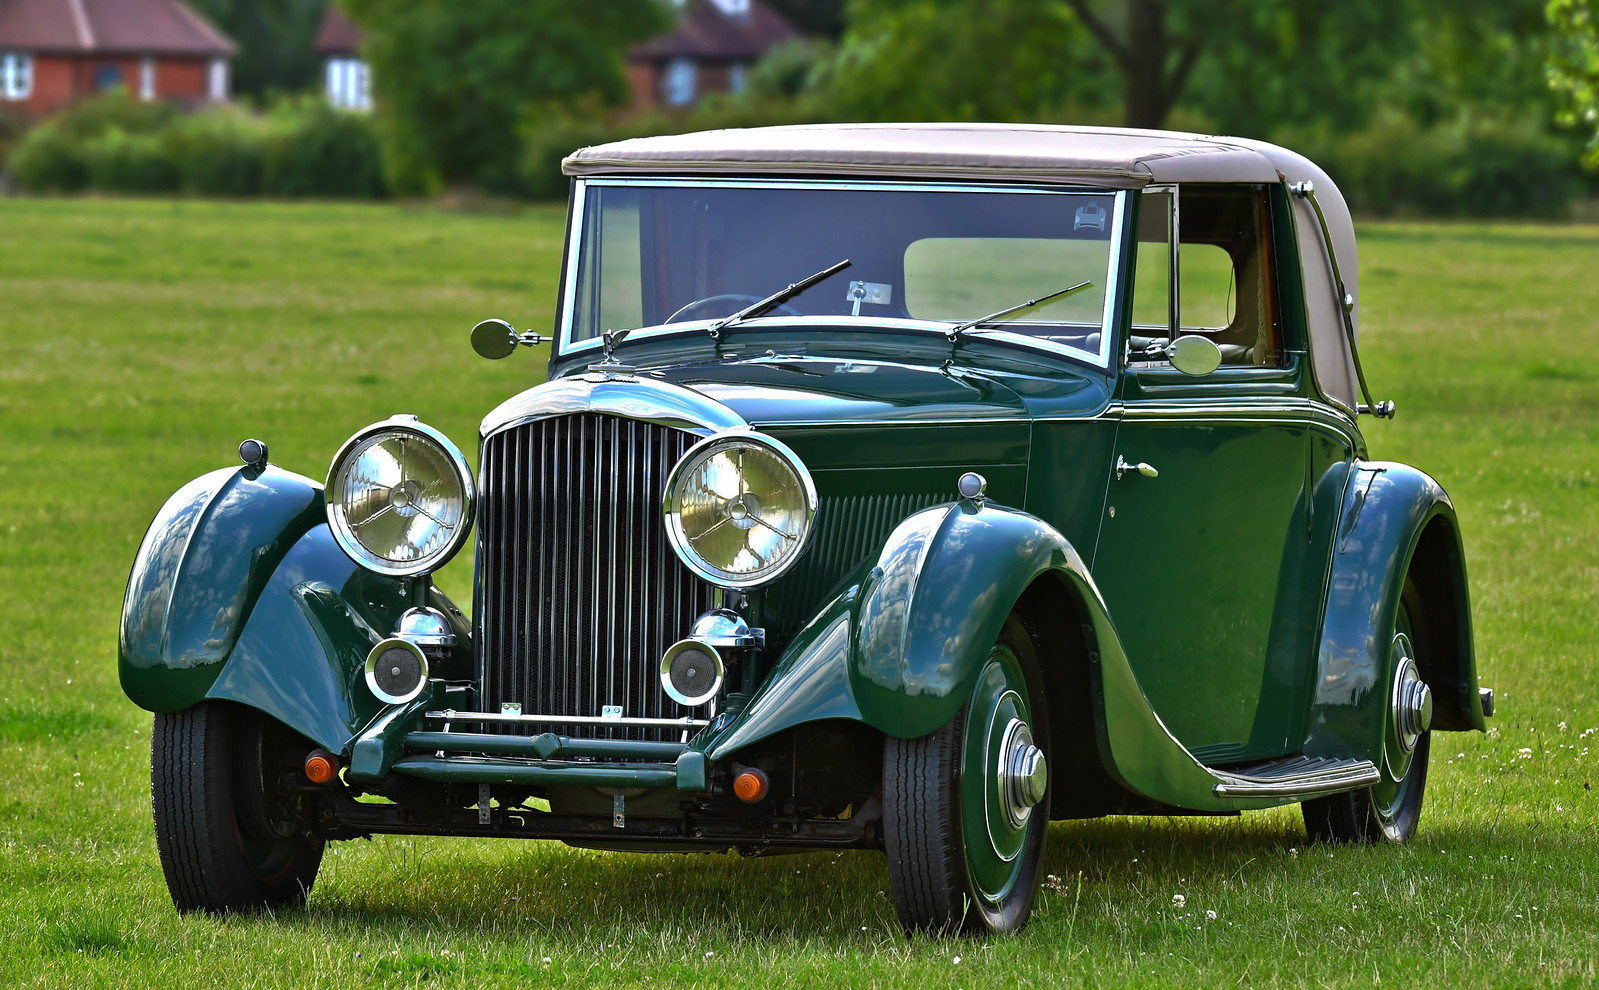 1935 Derby Bentley 3 1/2 Litre Sedanca Coupe by H.J. Mulline For Sale (picture 1 of 6)